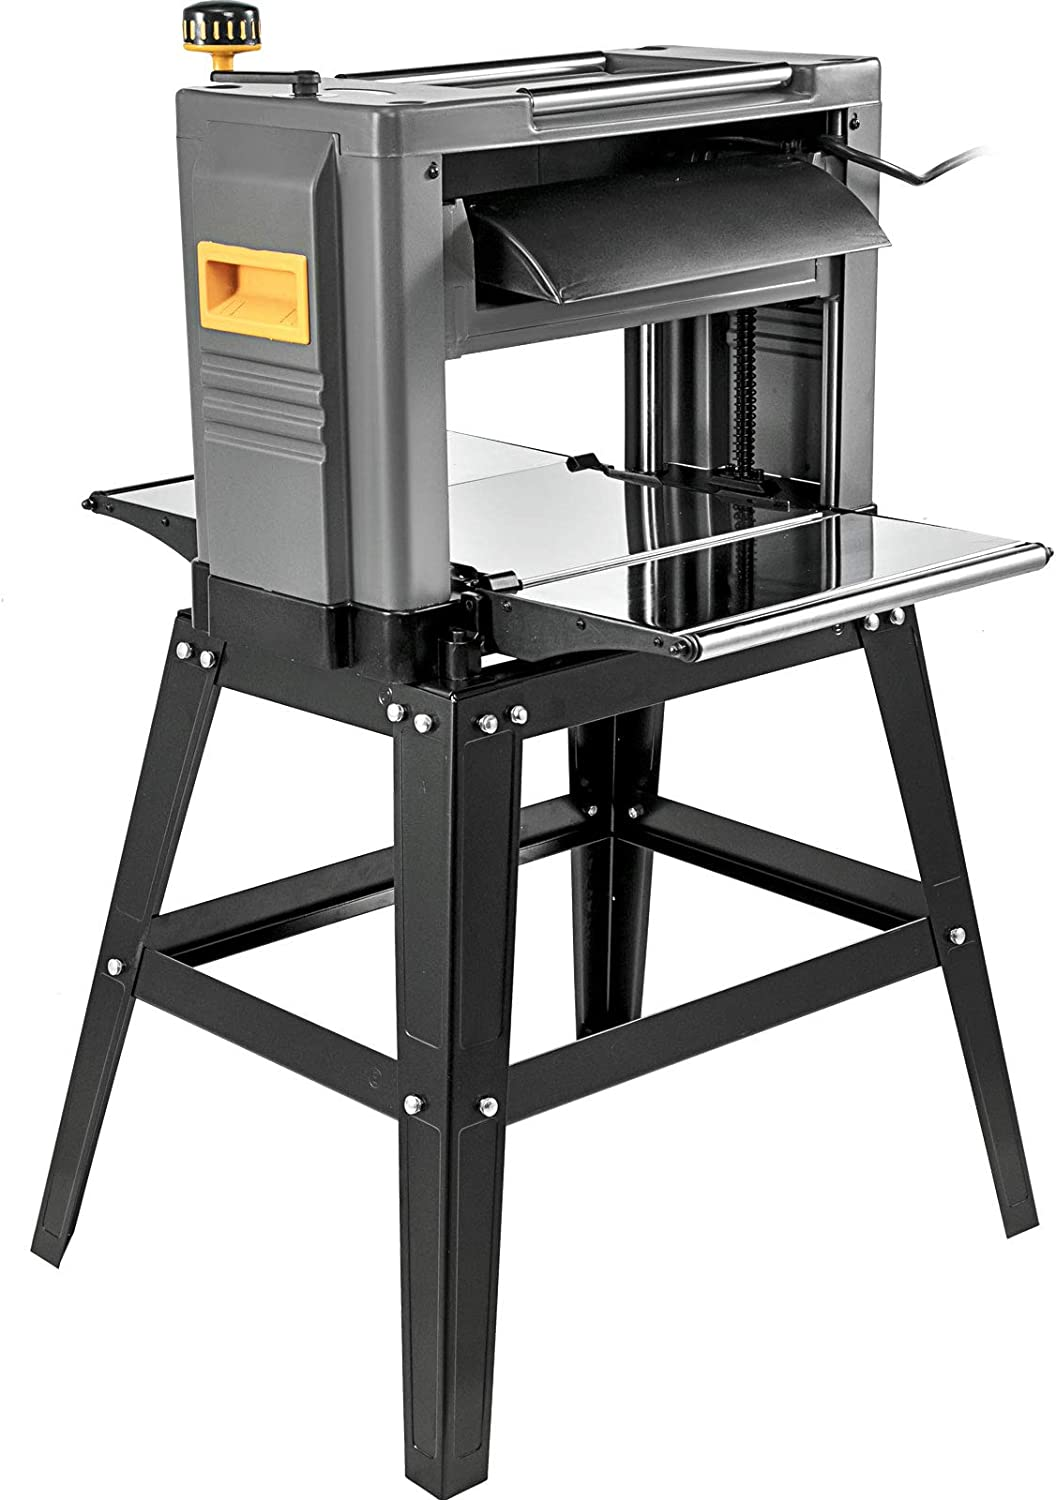 Amazon Com Mophorn Thickness Planer 12 5inch Thickness Planer Woodworking 15amp Double Cutter Benchtop Thickness Planer 1500w With Free 1 Set Blade And Stand Heavy Duty Dust Exhaust For Woodworking Furniture Decor